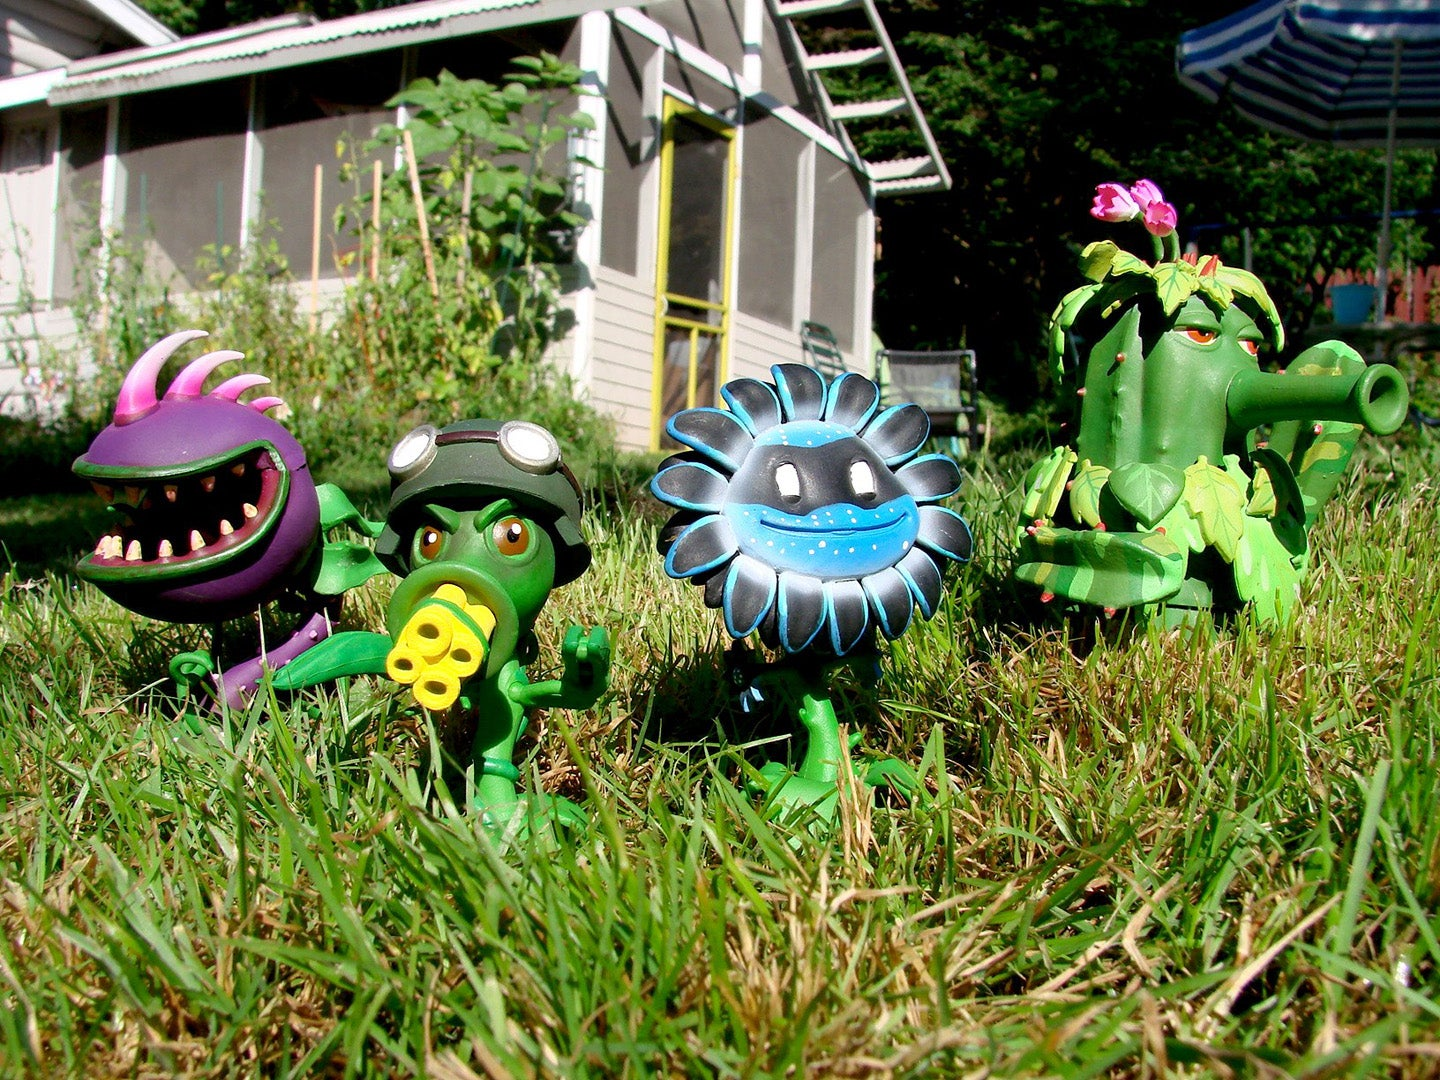 The Plants Vs Zombies Garden Warfare Action Figures Are